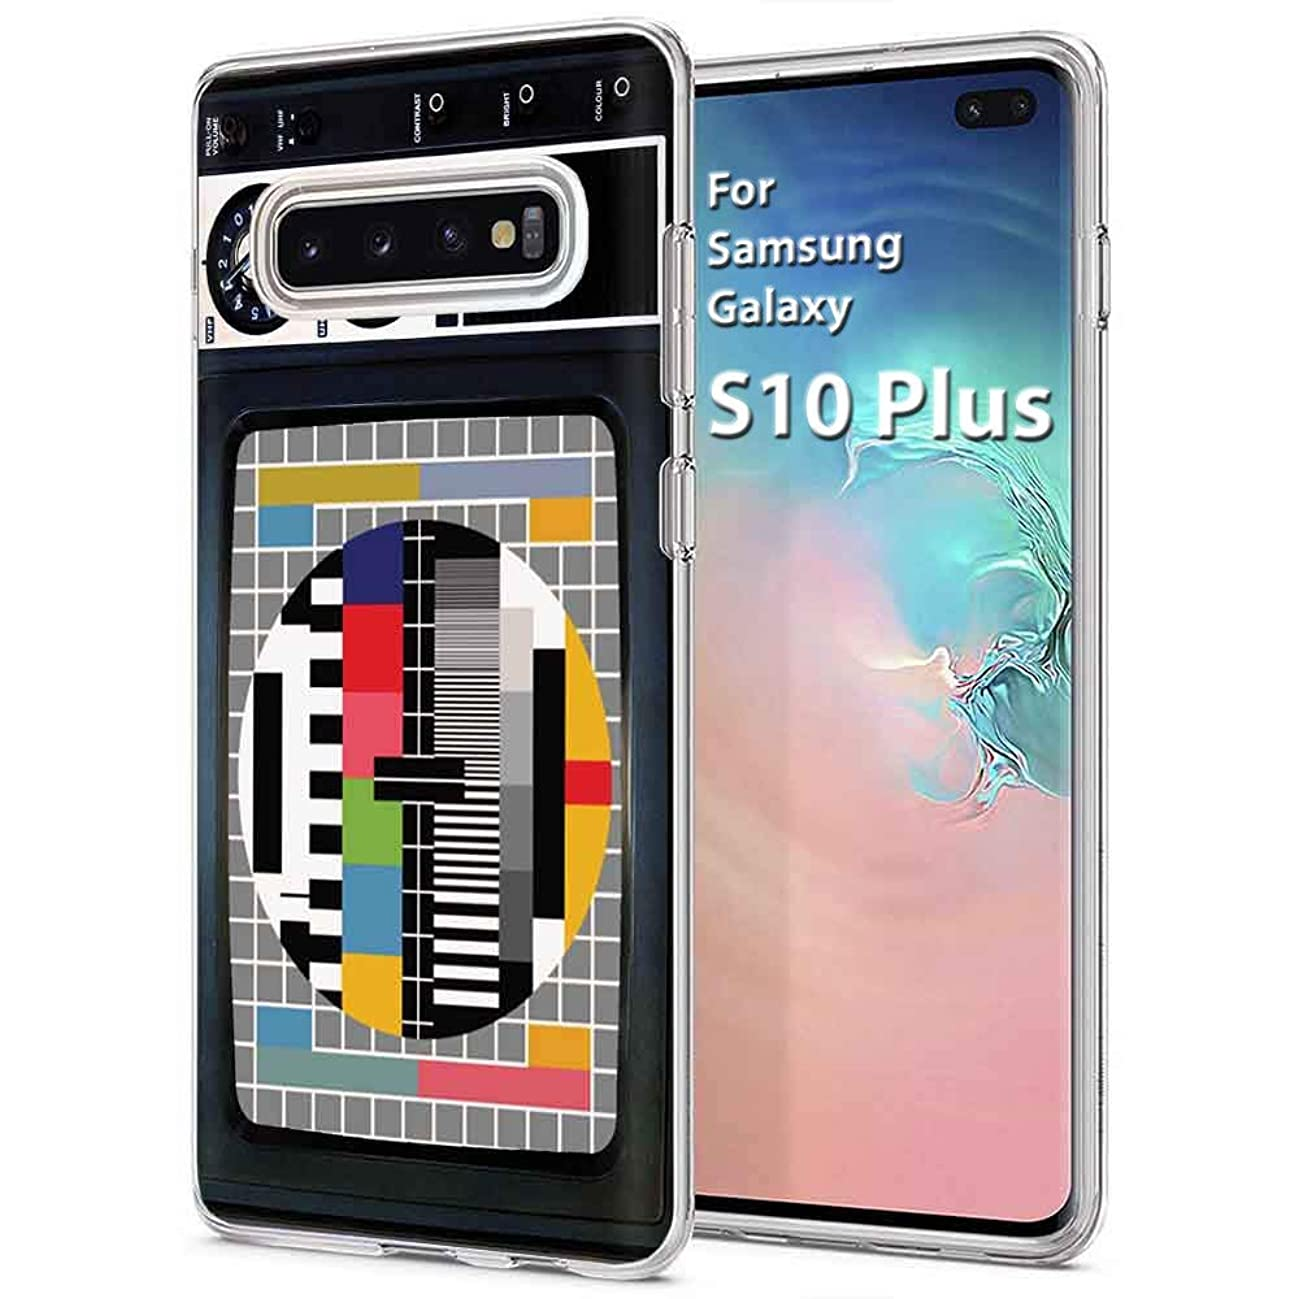 [Naked Shield] Samsung Galaxy S10 Plus [Clear] Slim Flex Gel Skin Case Feature Light Weight, Enhanced Grip Design TPU Case for Samsung SM-G975 [Retro TV Print], Designed in USA